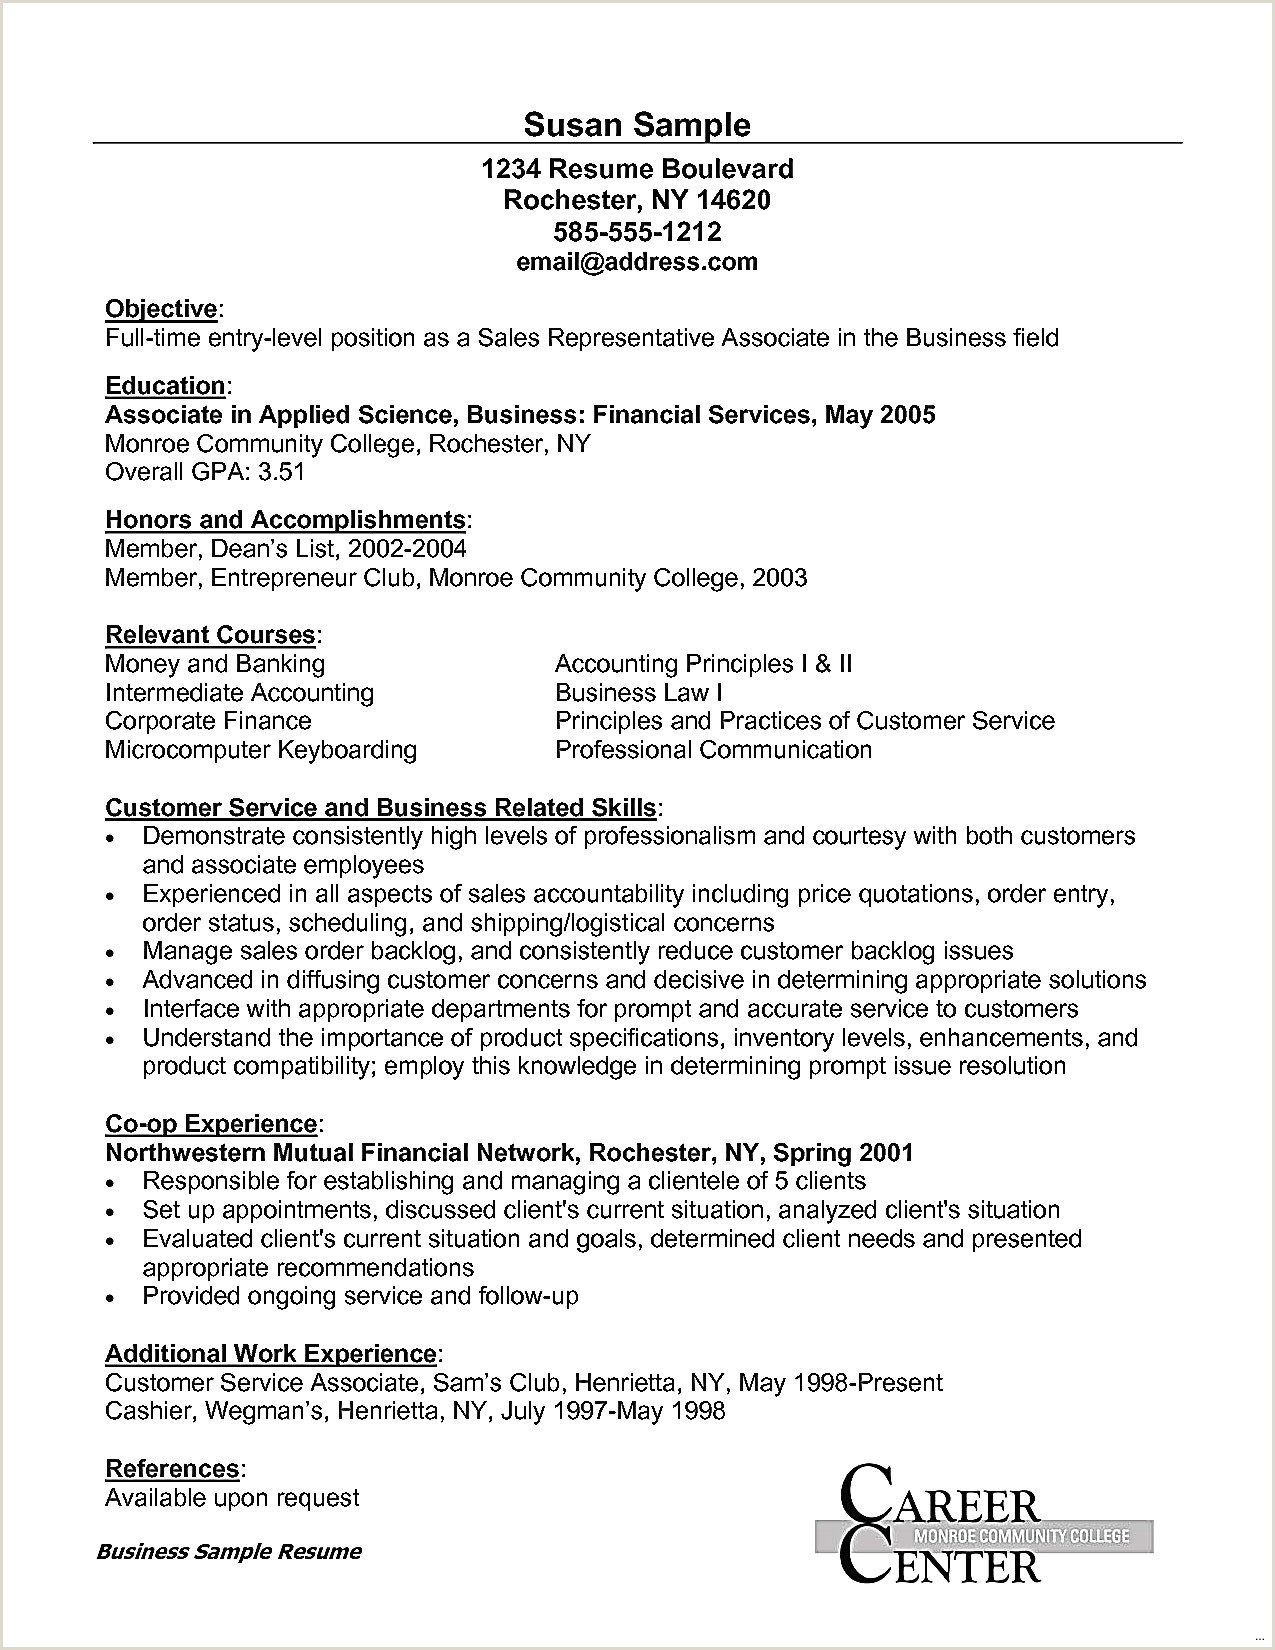 Entry Level Pharmaceutical Sales Cover Letter Sample Cover Letter for Fresh Graduate without Experience